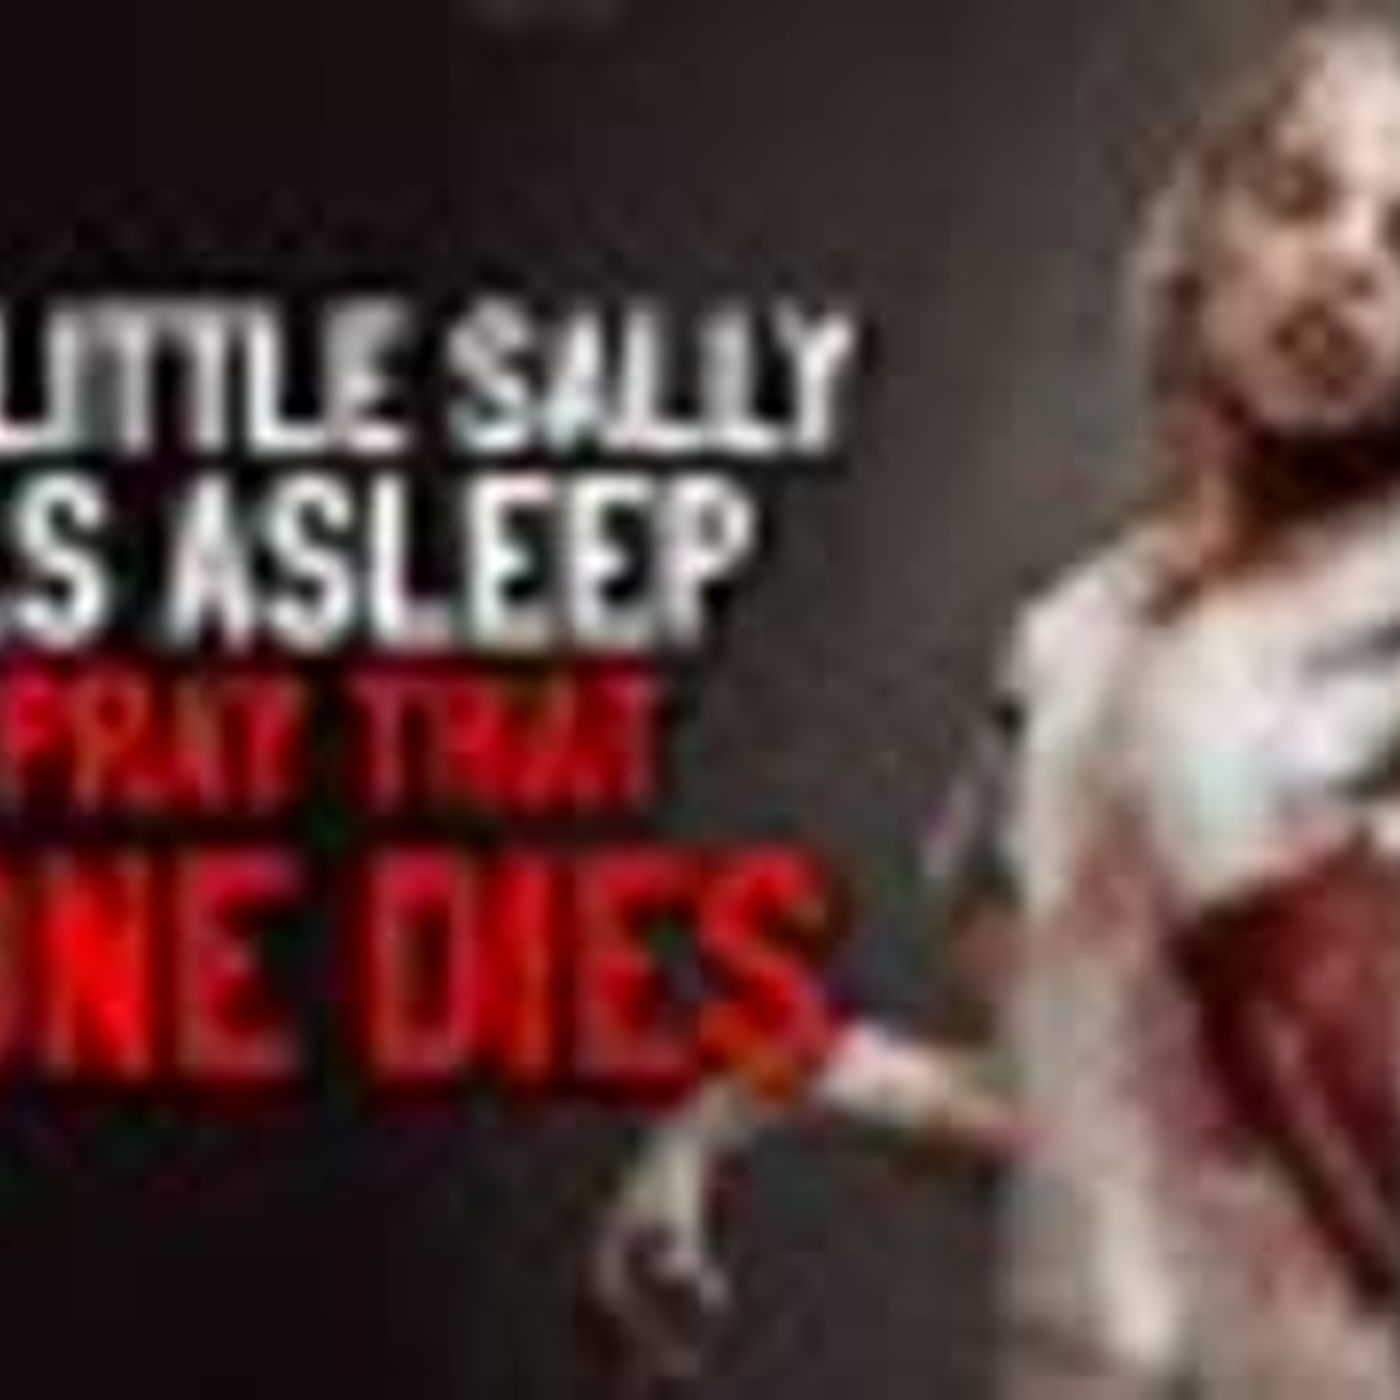 """When little Sally falls asleep, we pray that no one dies"" Creepypasta"